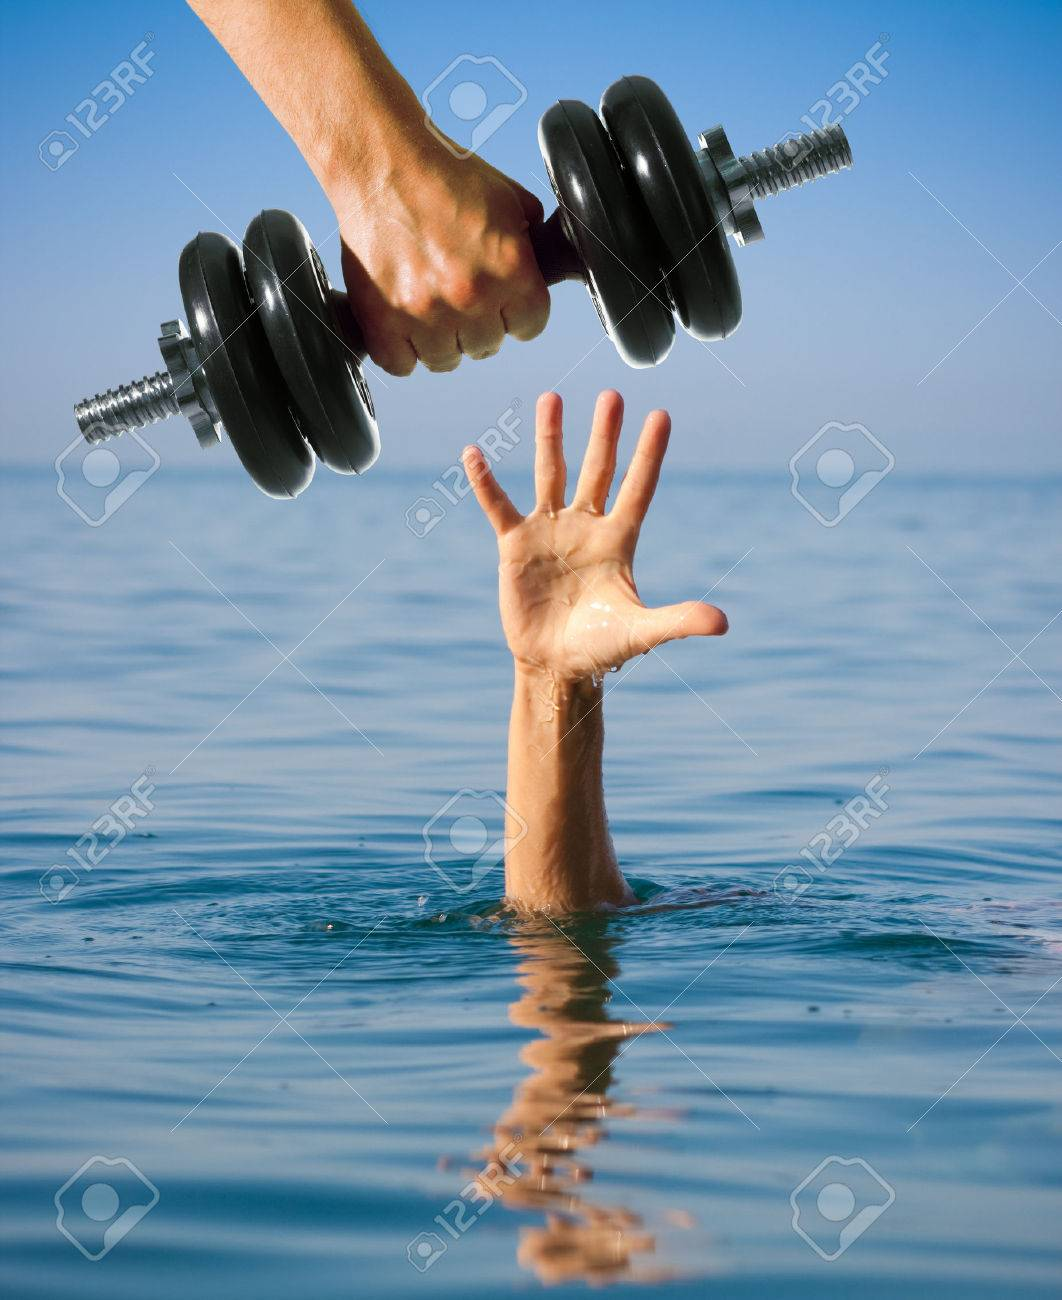 Giving dumbbell to sinking man instead of help making worse concept stock photo 28608796